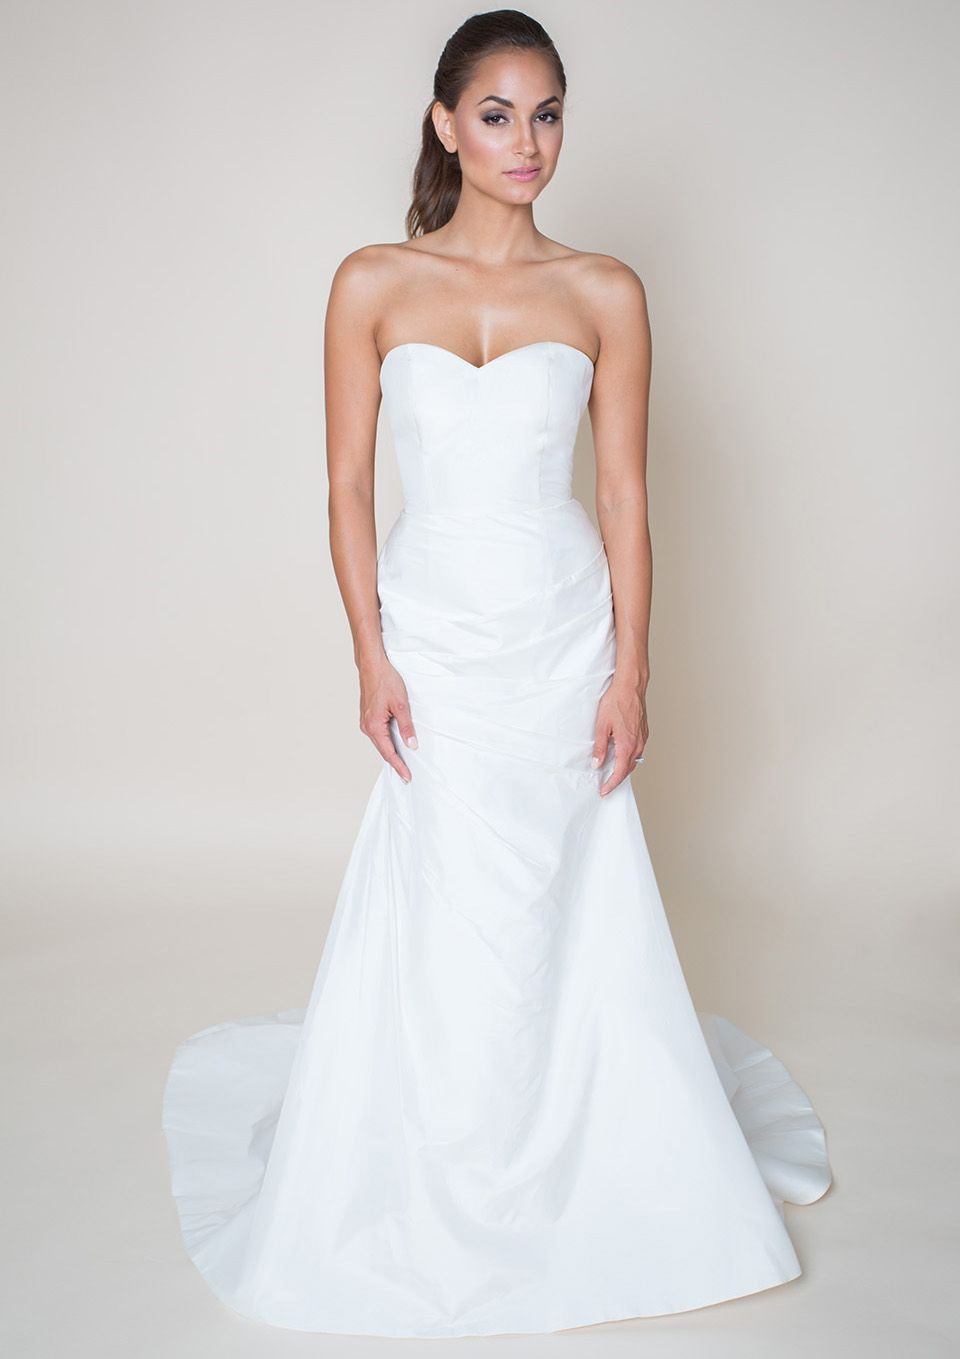 Cora Lee Feminine And Sophisticated This Fit To Flare Wedding